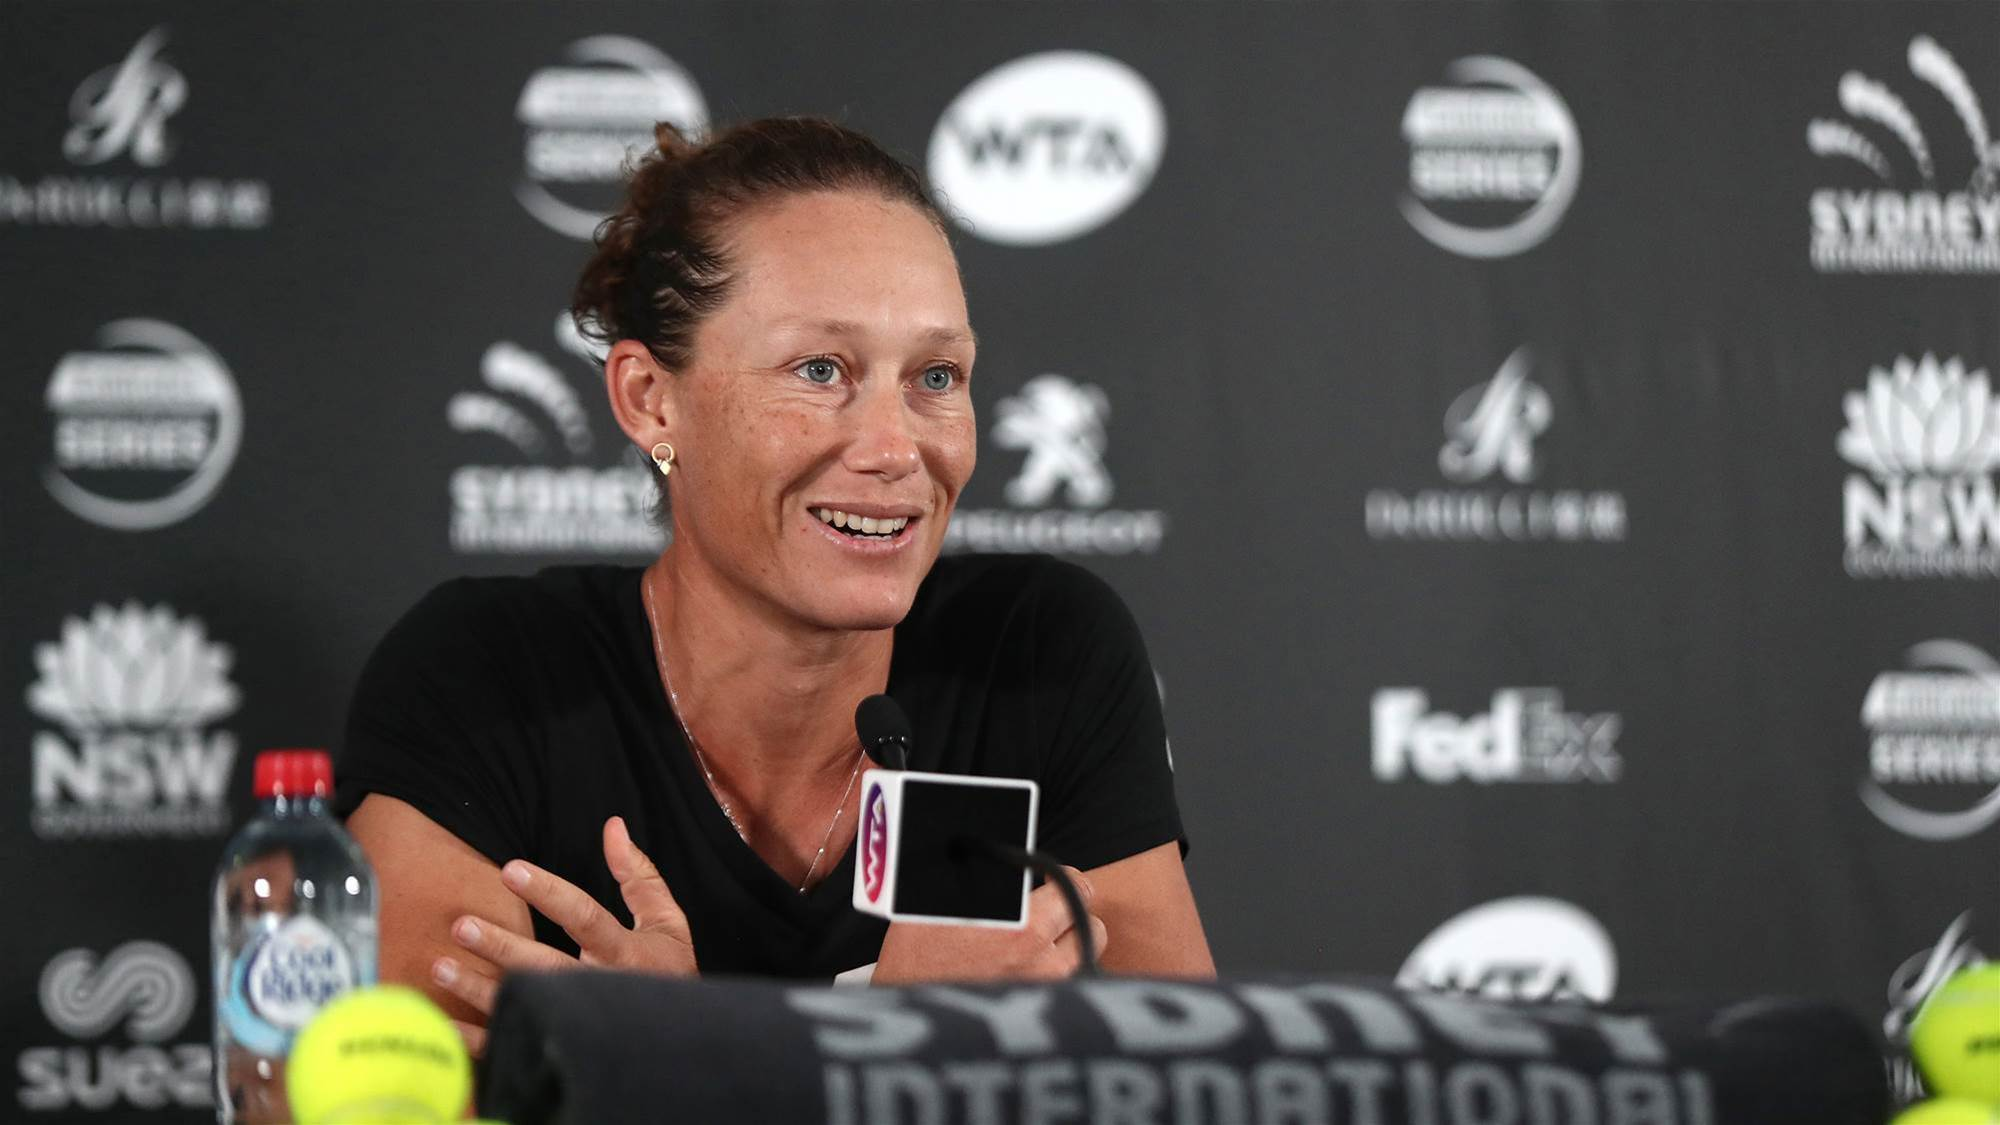 Lessons learned for Stosur as Australian Open approaches